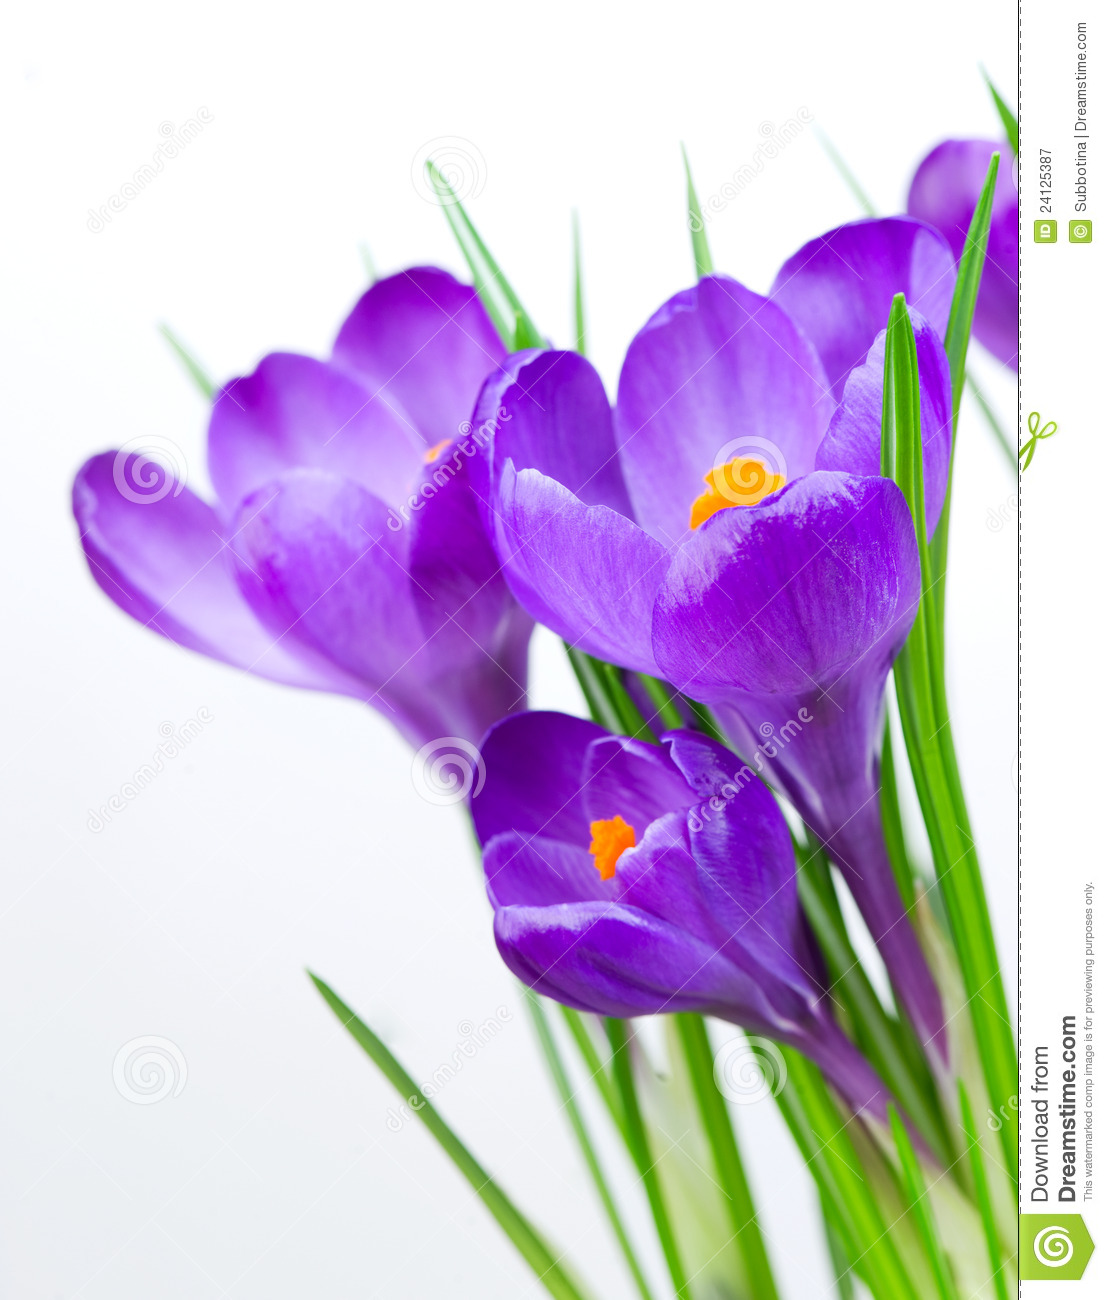 Crocus Spring Flowers Stock Image Image Of Design Growing 24125387